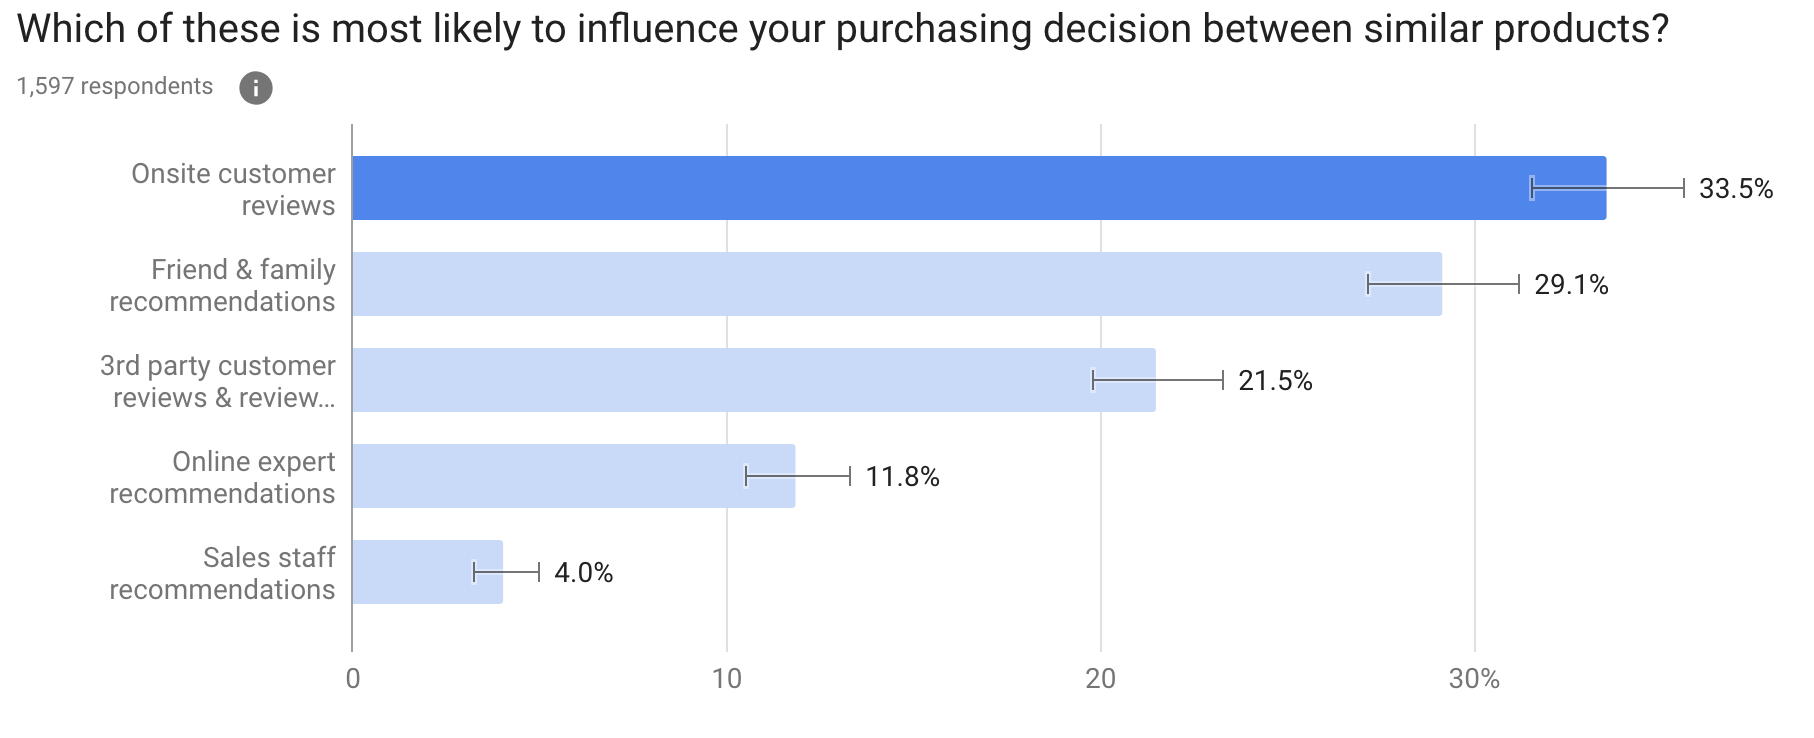 Which of these is most likely to influence your purchasing decision between similar products?